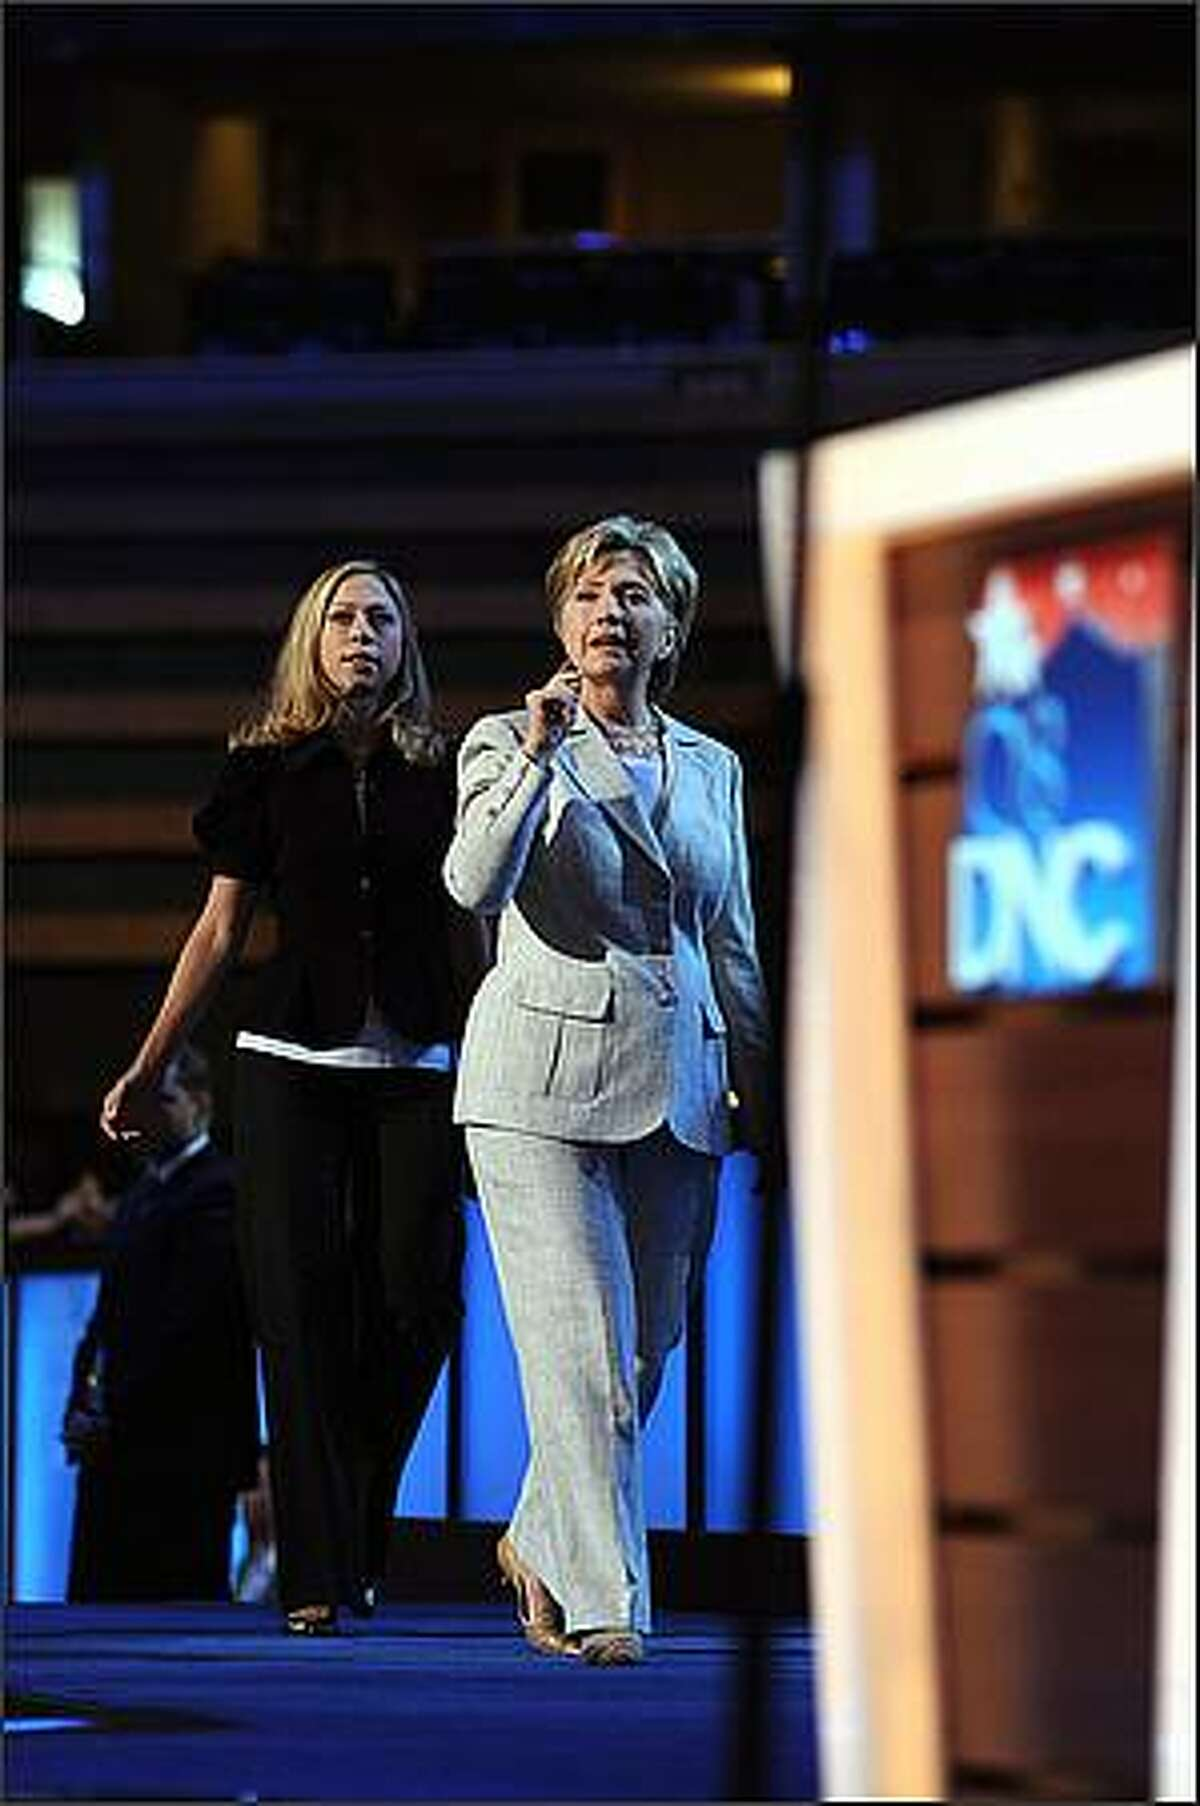 Sen. Hillary Rodham Clinton (D-N.Y.) is joined by her daughter, Chelsea Clinton, for a walkthrough and soundcheck for her address to the Democratic National Convention in Denver. (Kevin Moloney/The New York Times)